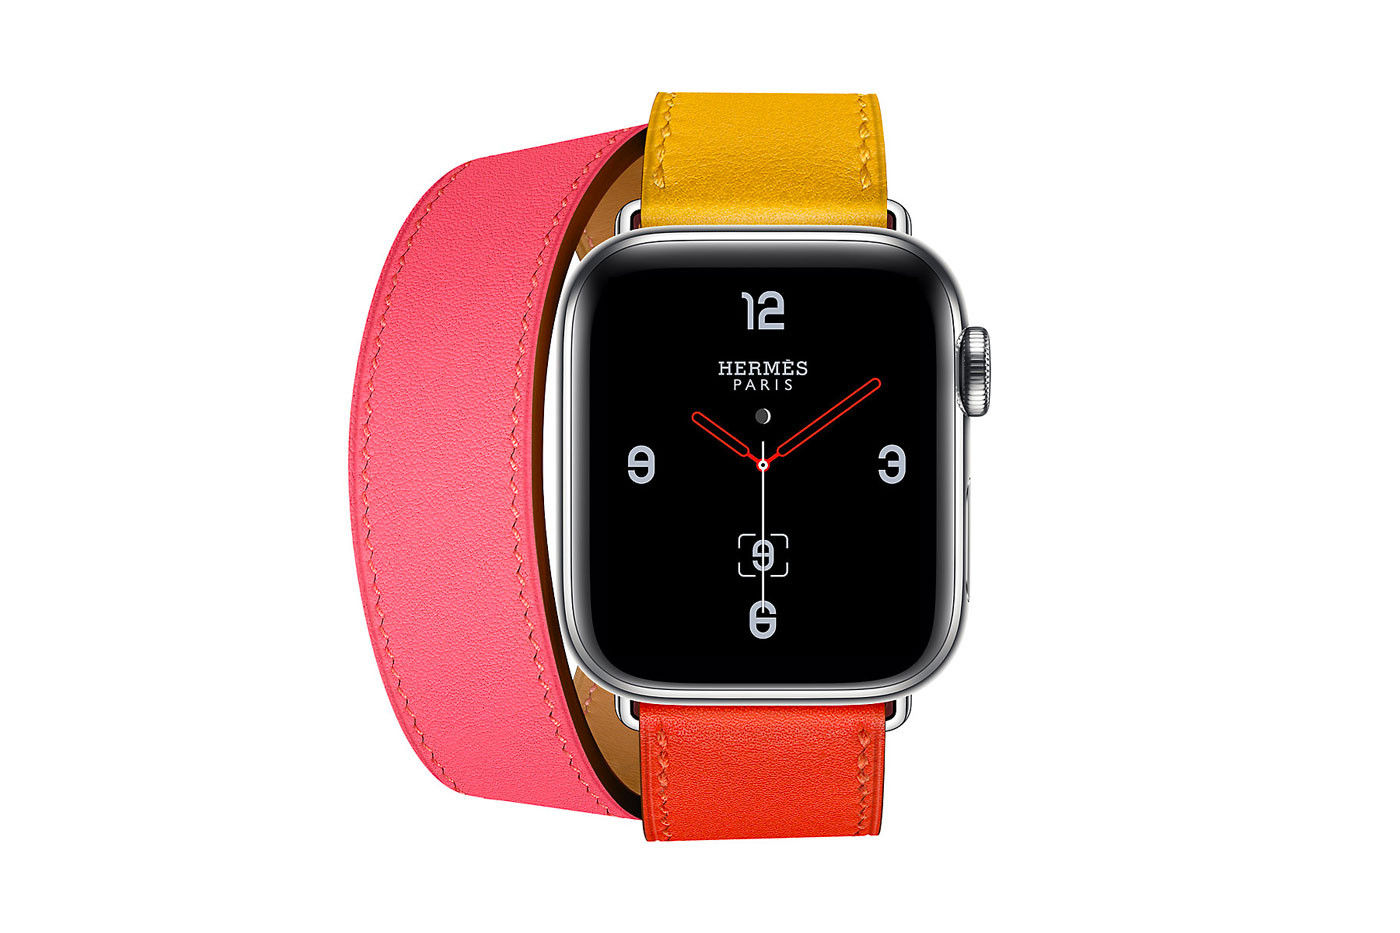 1a5f1a98f The luxury fashion house just dropped a set of new Apple Watch Series 4  straps, offering two premium leather options in vibrant colorways.